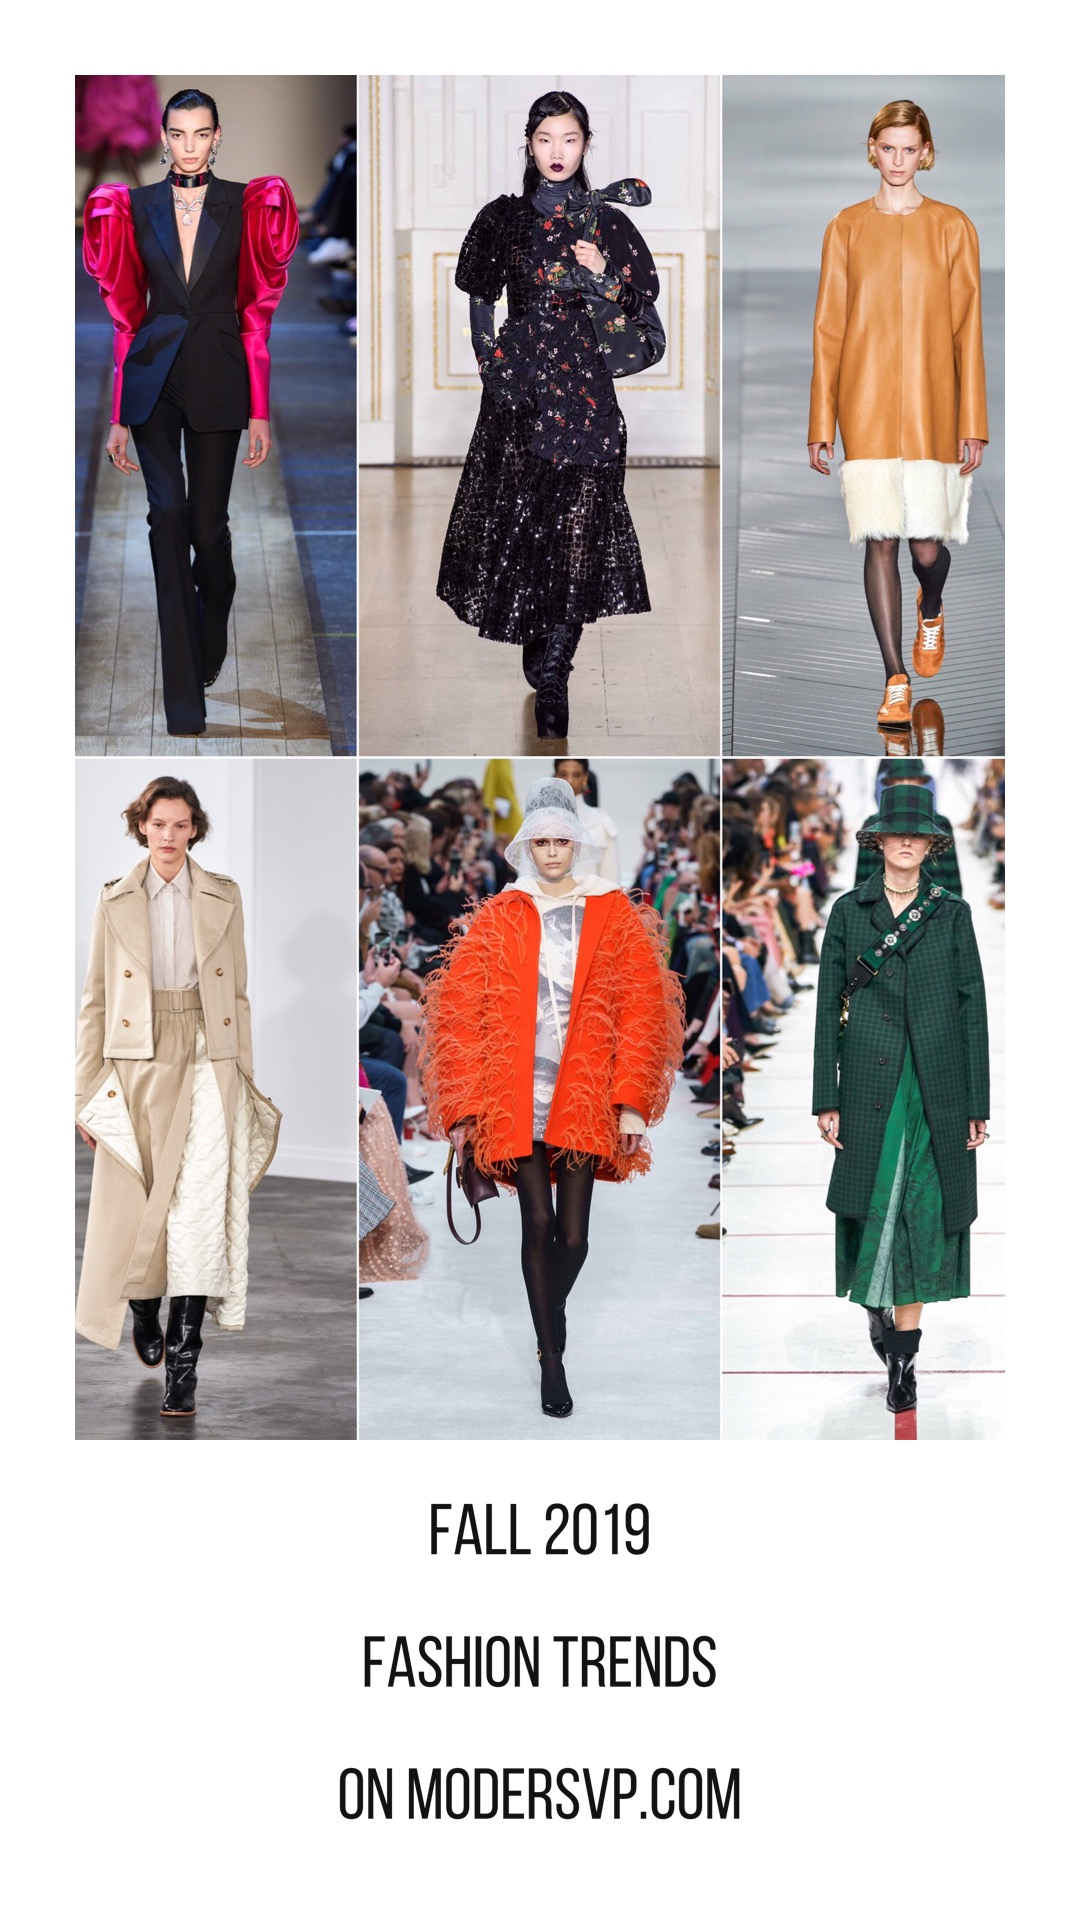 2019 Fall Fashion Trends report fall-2019 fashion week coverage Alexander Mc Queen, Dries Van Noten, Loewe, Gabriela Hearst, Nina Ricci, Dior - Fall Winter 2019 2020 Runway Report Trends